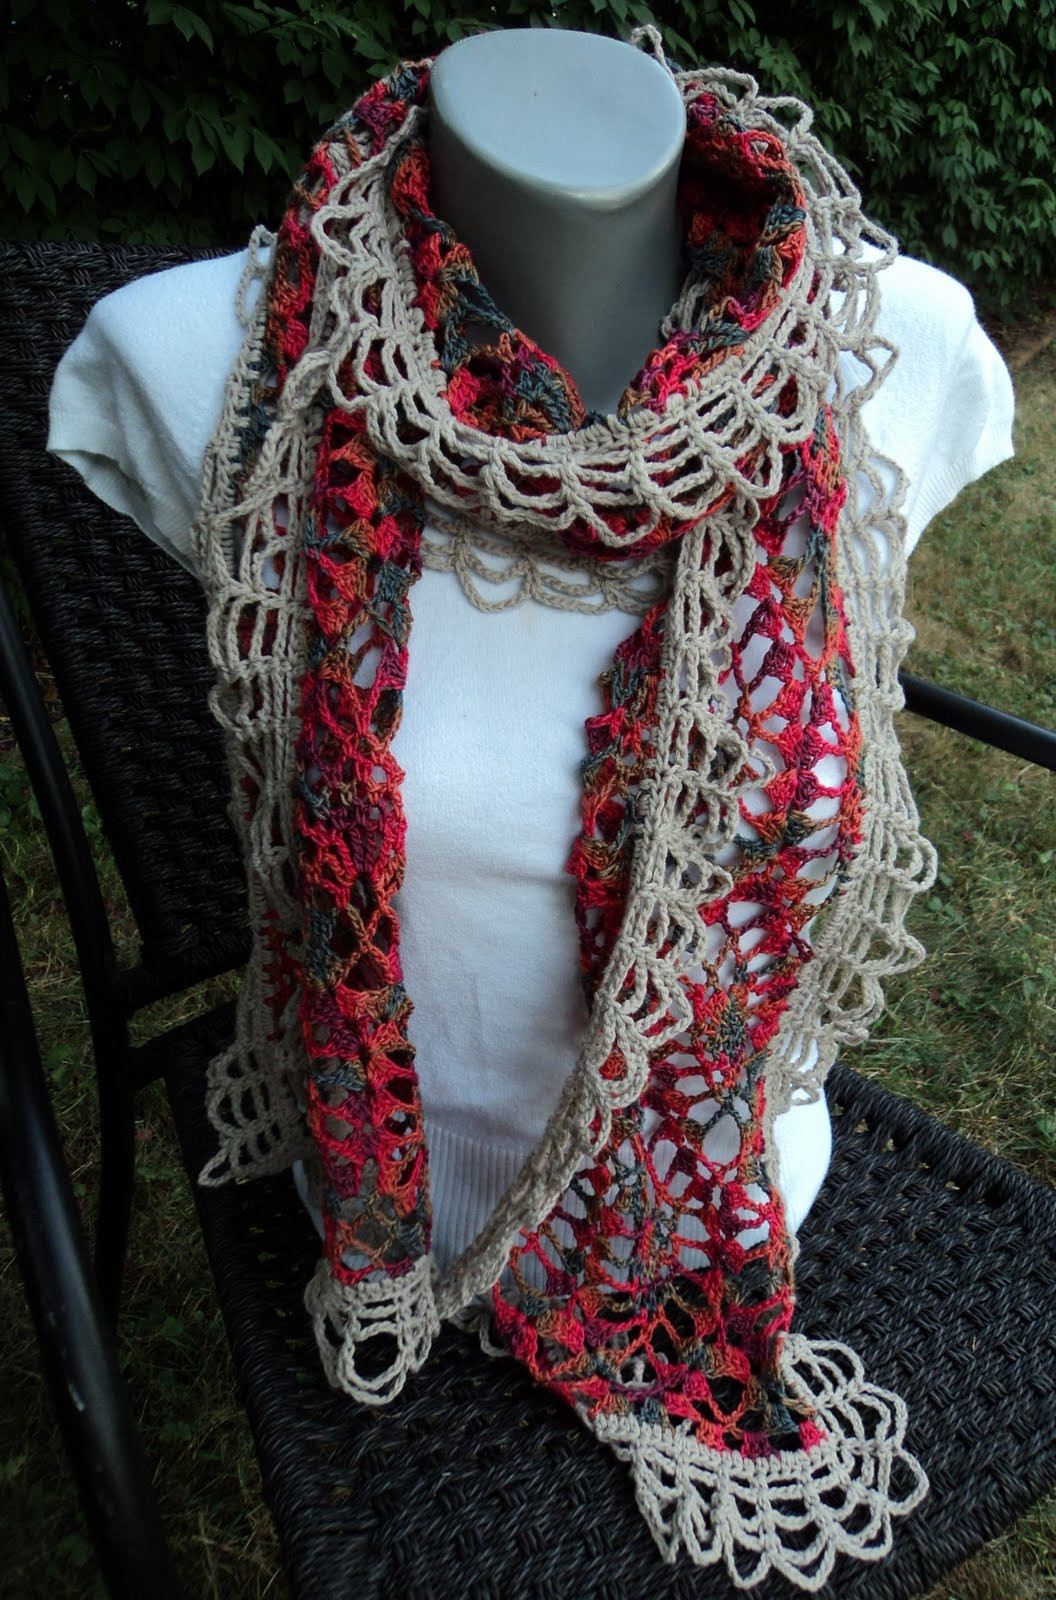 CROCHET RUFFLE SCARF PATTERN – Crochet Club